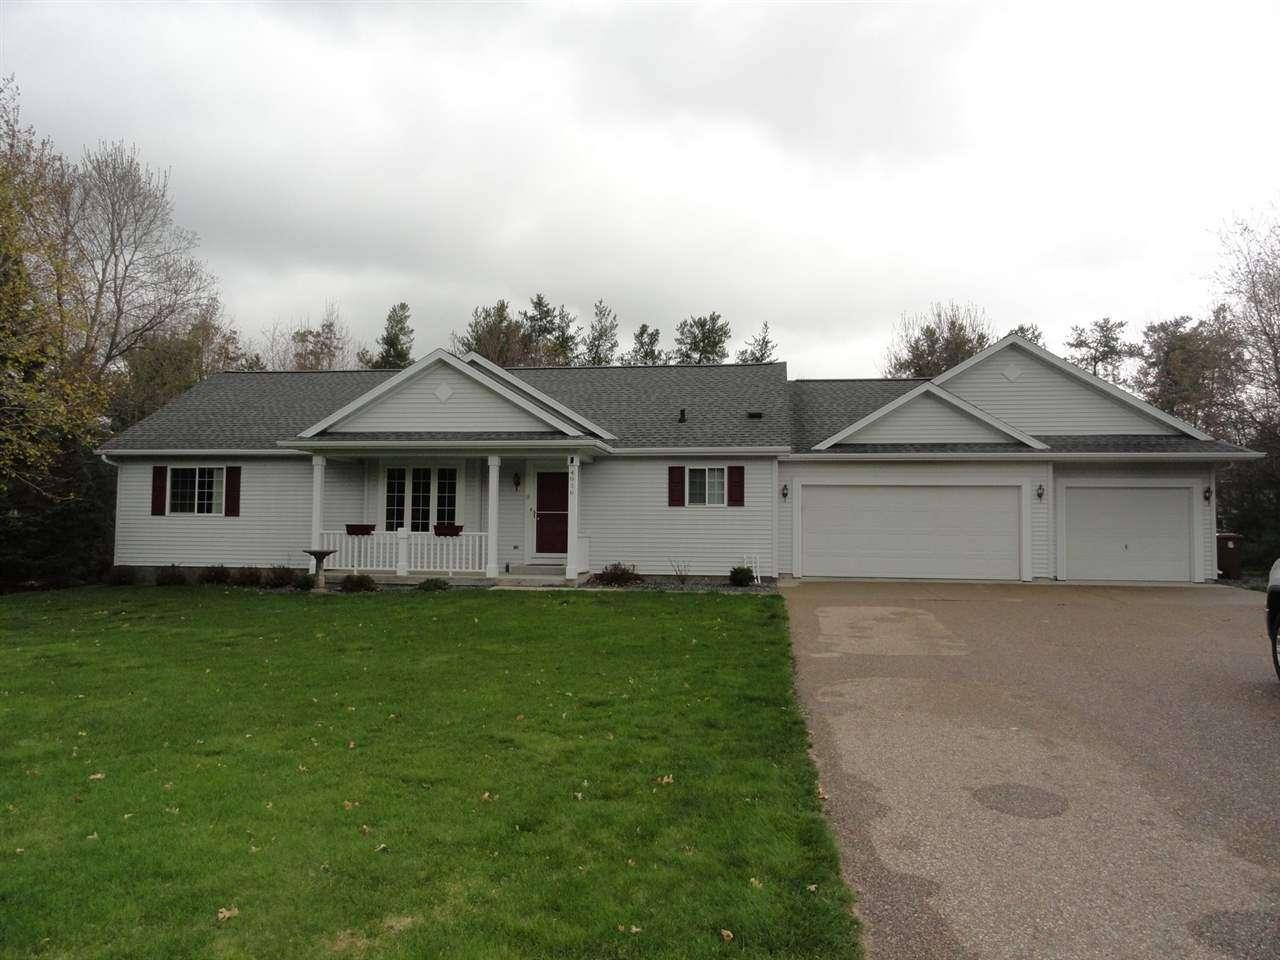 4916 hummingbird ln stevens point wi mls 1702503 for Home builders wisconsin